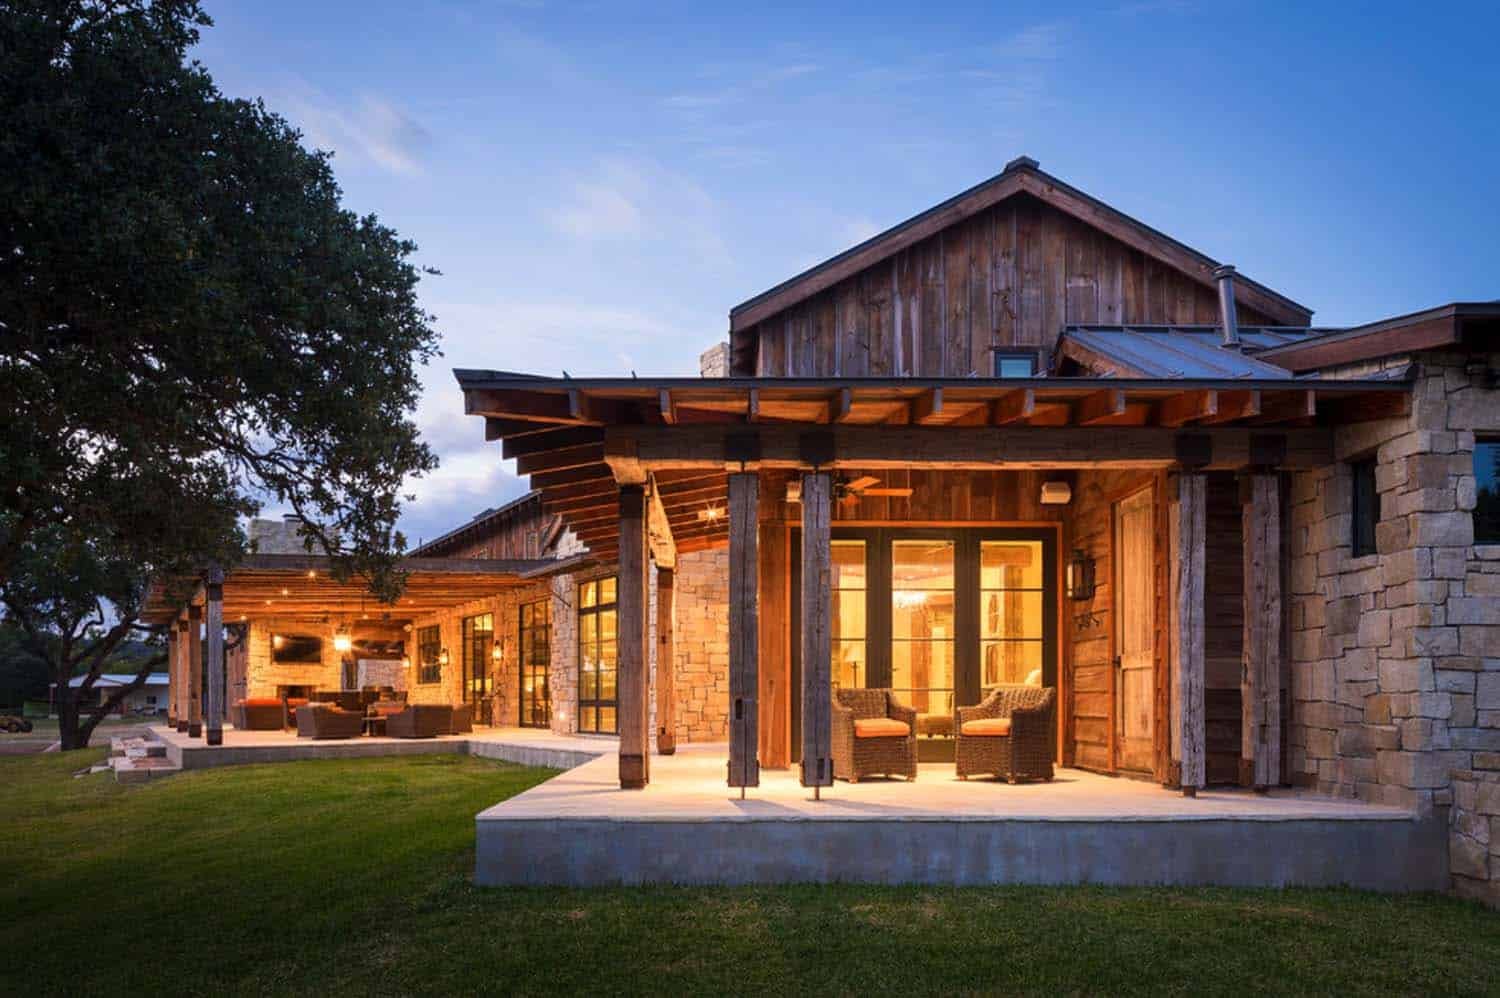 Modern rustic barn style retreat in texas hill country for Modern rustic house plans